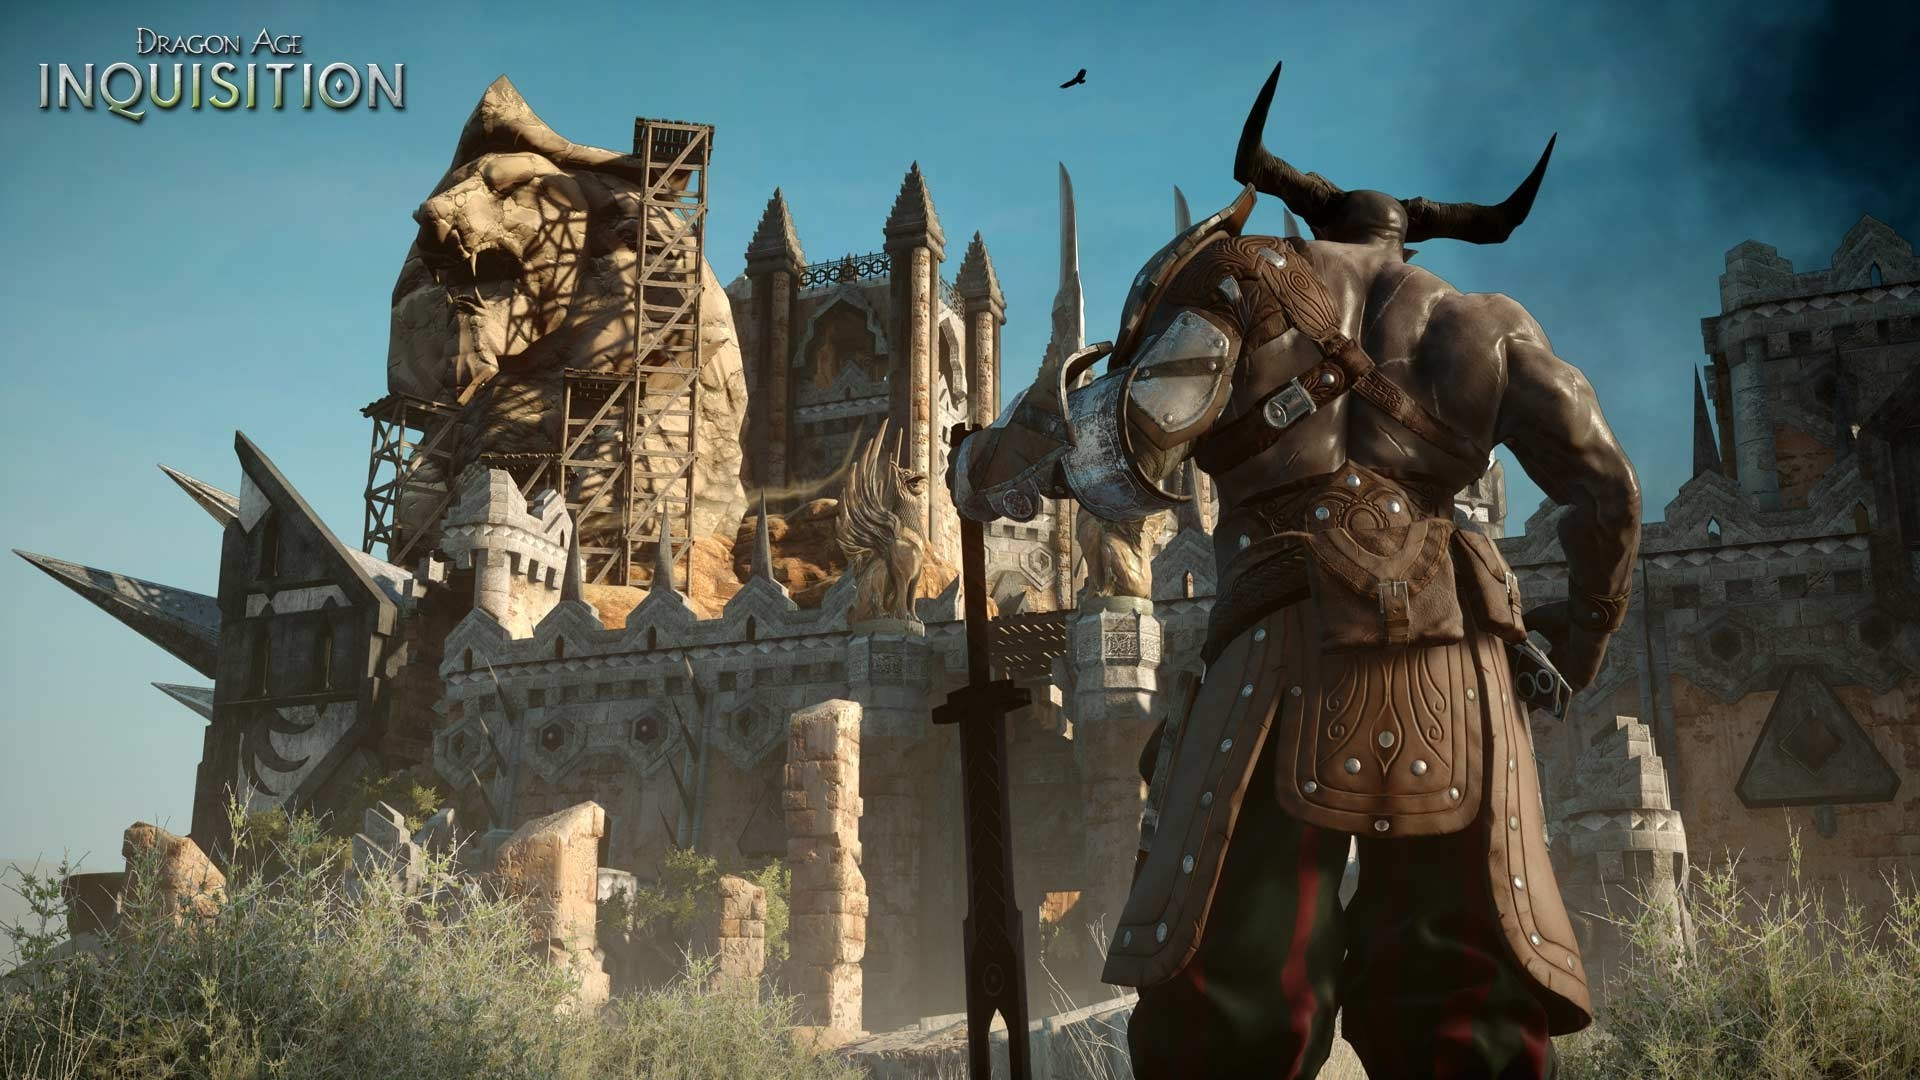 Dragon Age: Inquisition recognized with GLAAD Media Award for its LGBT characters